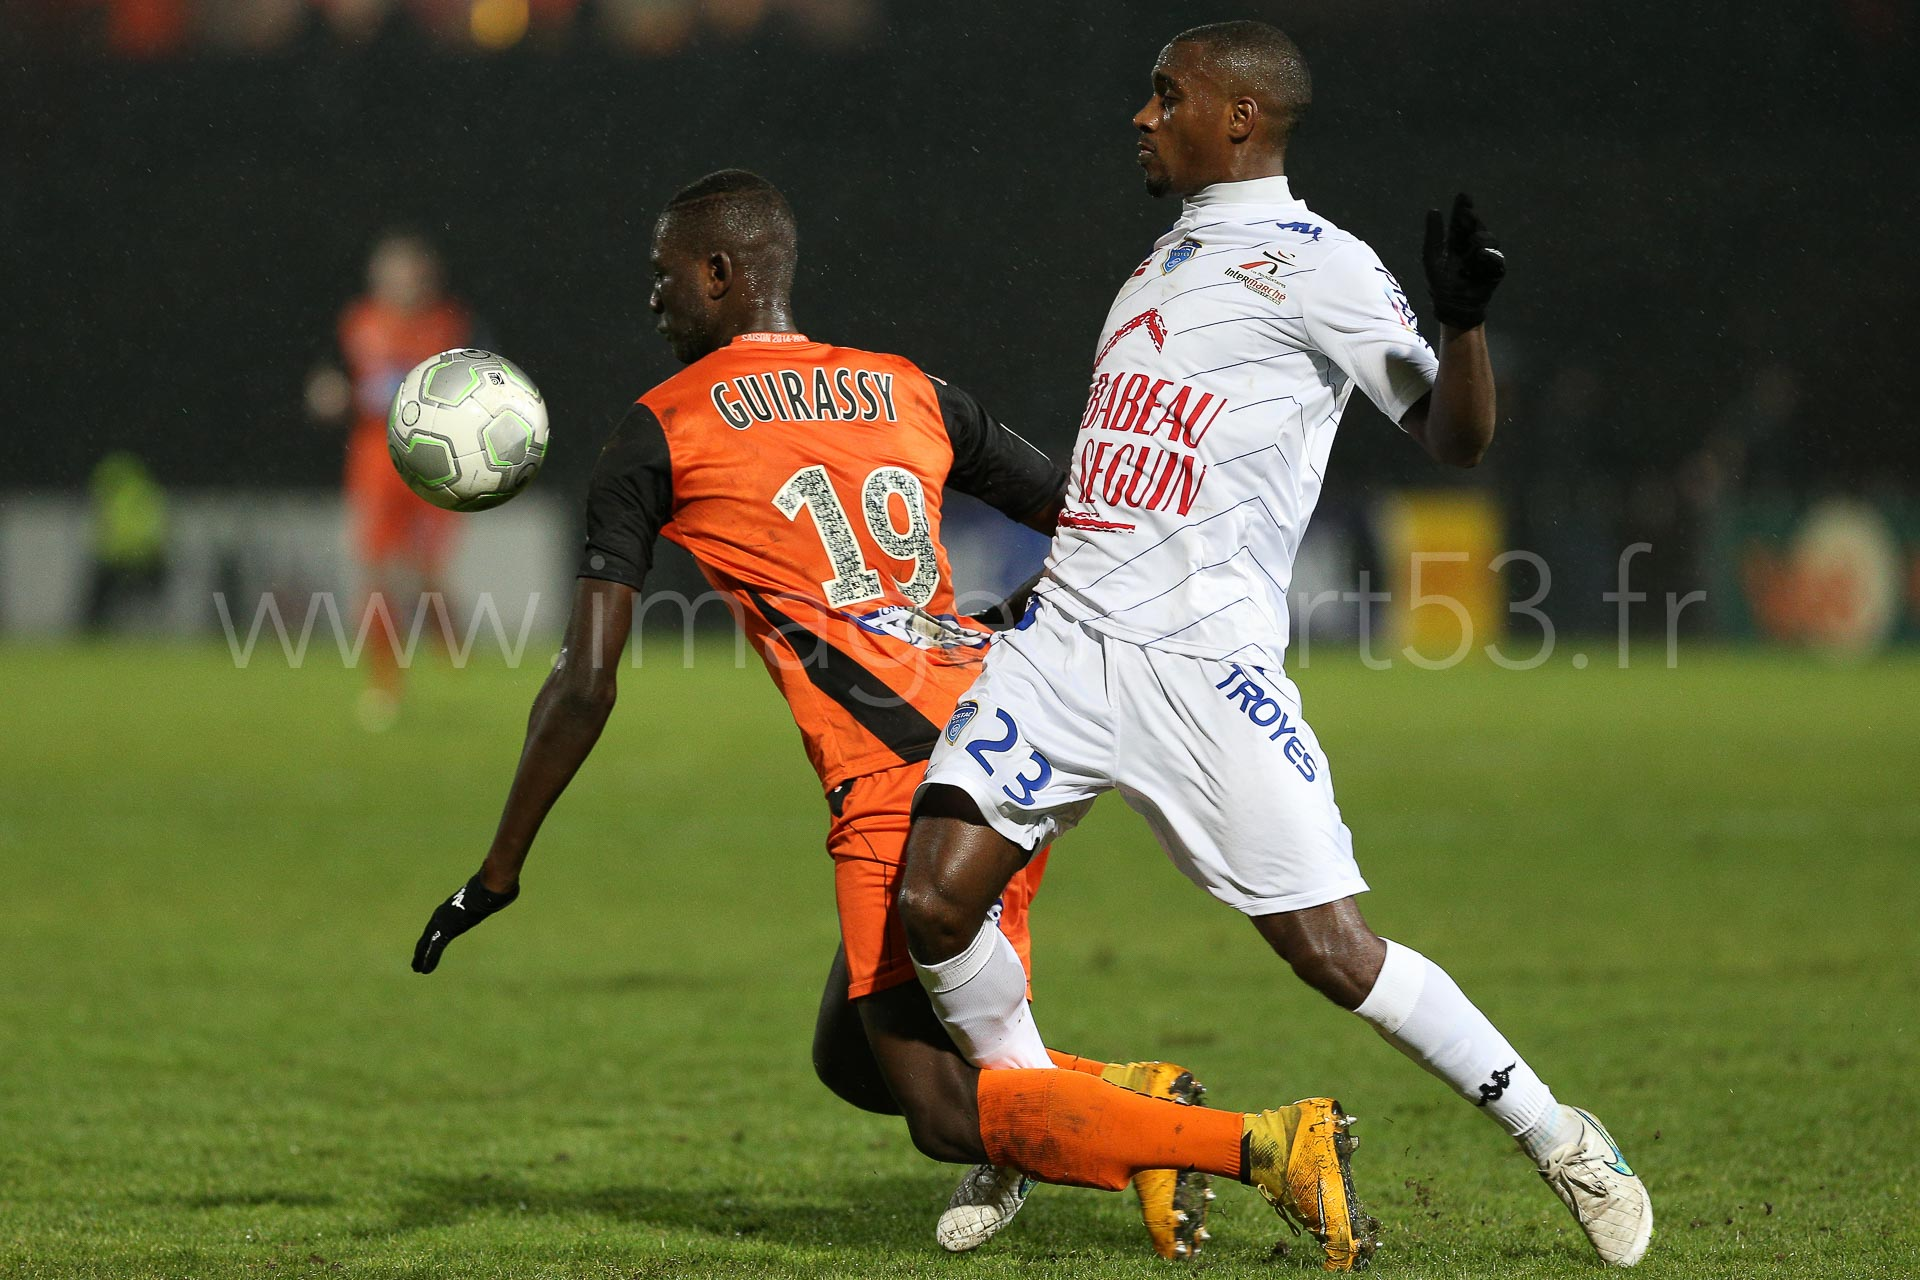 NG-Ligue2-1415-J22-Laval-Troyes_7